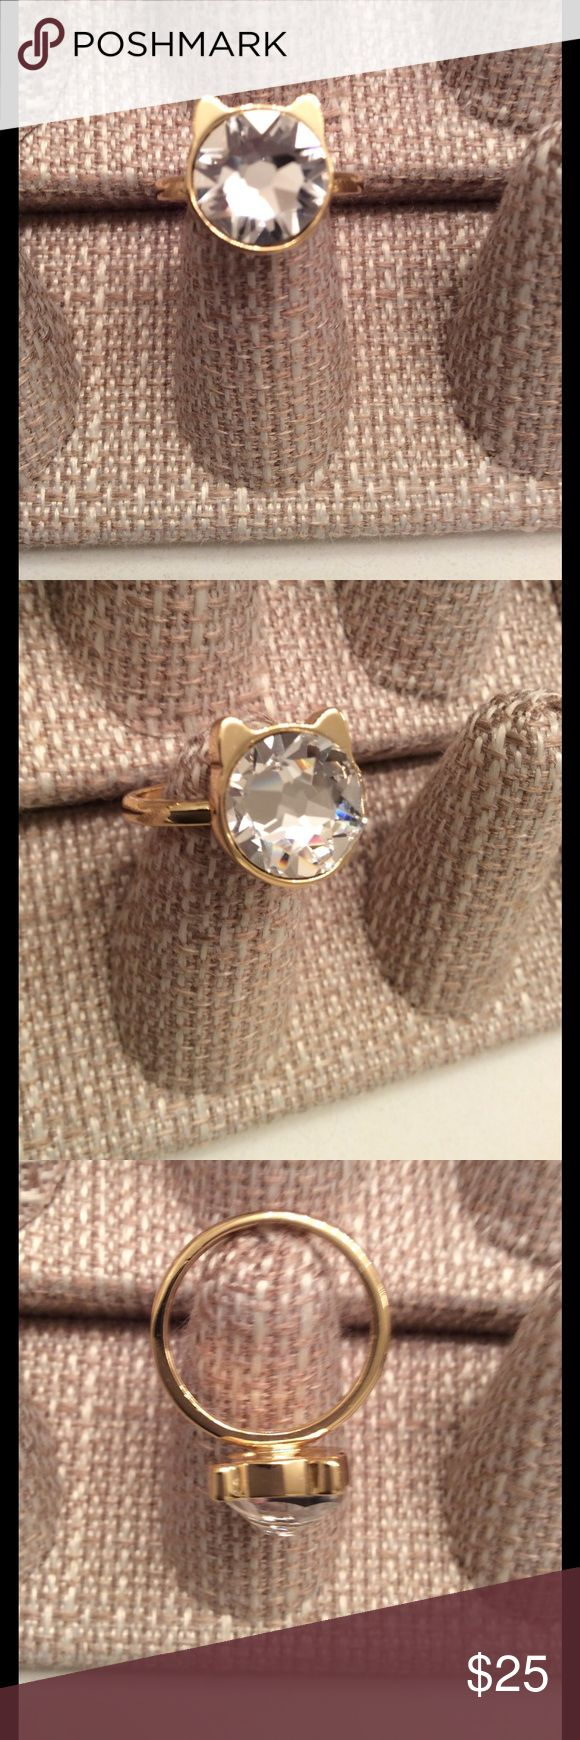 Puuurrfect,  Kitty Kat Golden Crystal Ring Puuurrrfect 14 k Gold Plated Crystal Ring, Too Cute to pass up. KEVET Jewelry Rings